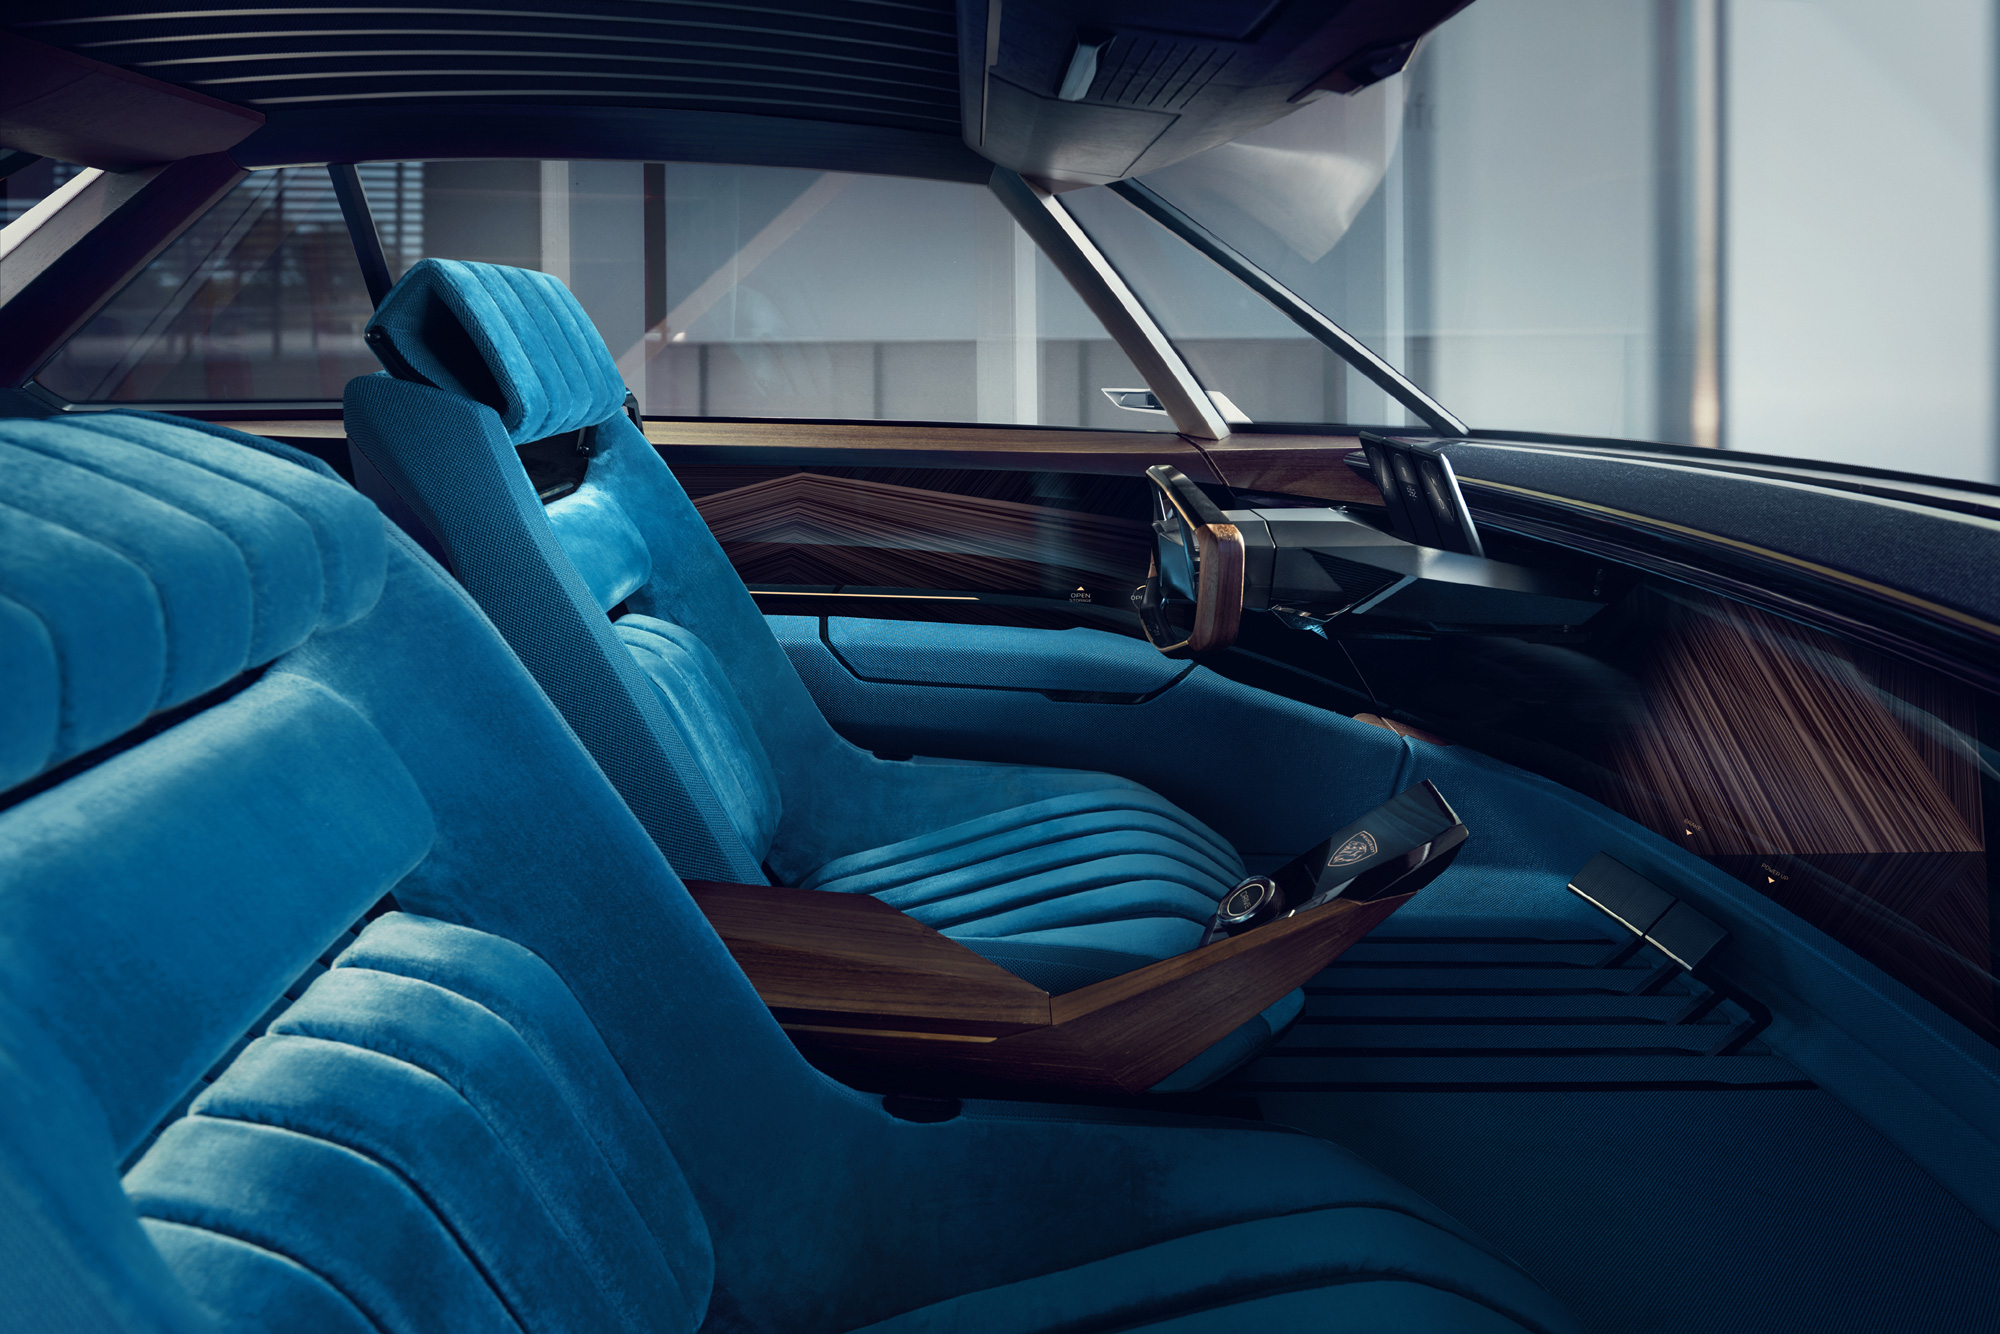 peugeot_e-legend_interior